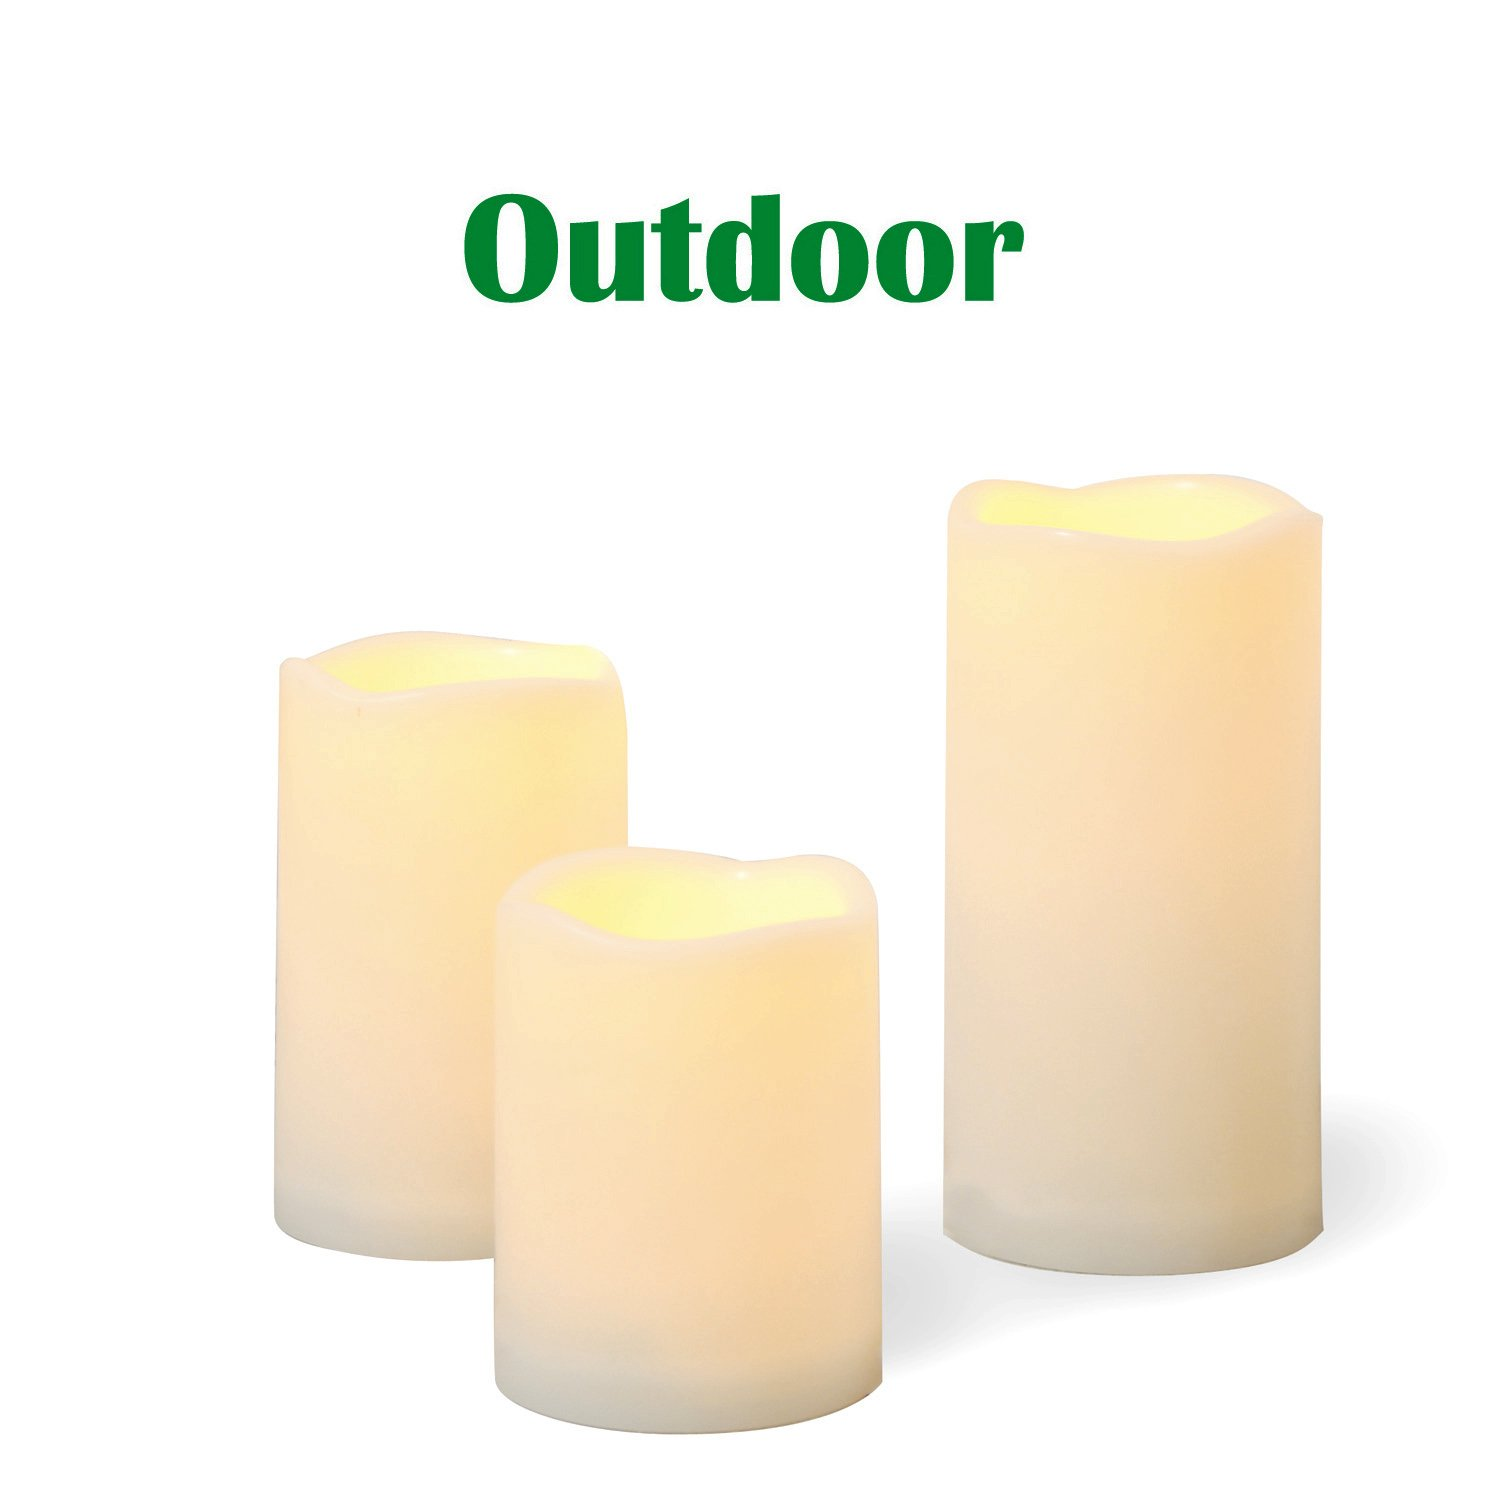 "Outdoor Flameless LED Candles with Timer - 3-Pack Long Lasting Waterproof Realistic Flickering Battery-operated Battery Powered Electric Electronic Plastic Resin Pillar Candle Set 3""(D)x4"" 5"" 6""(H)"